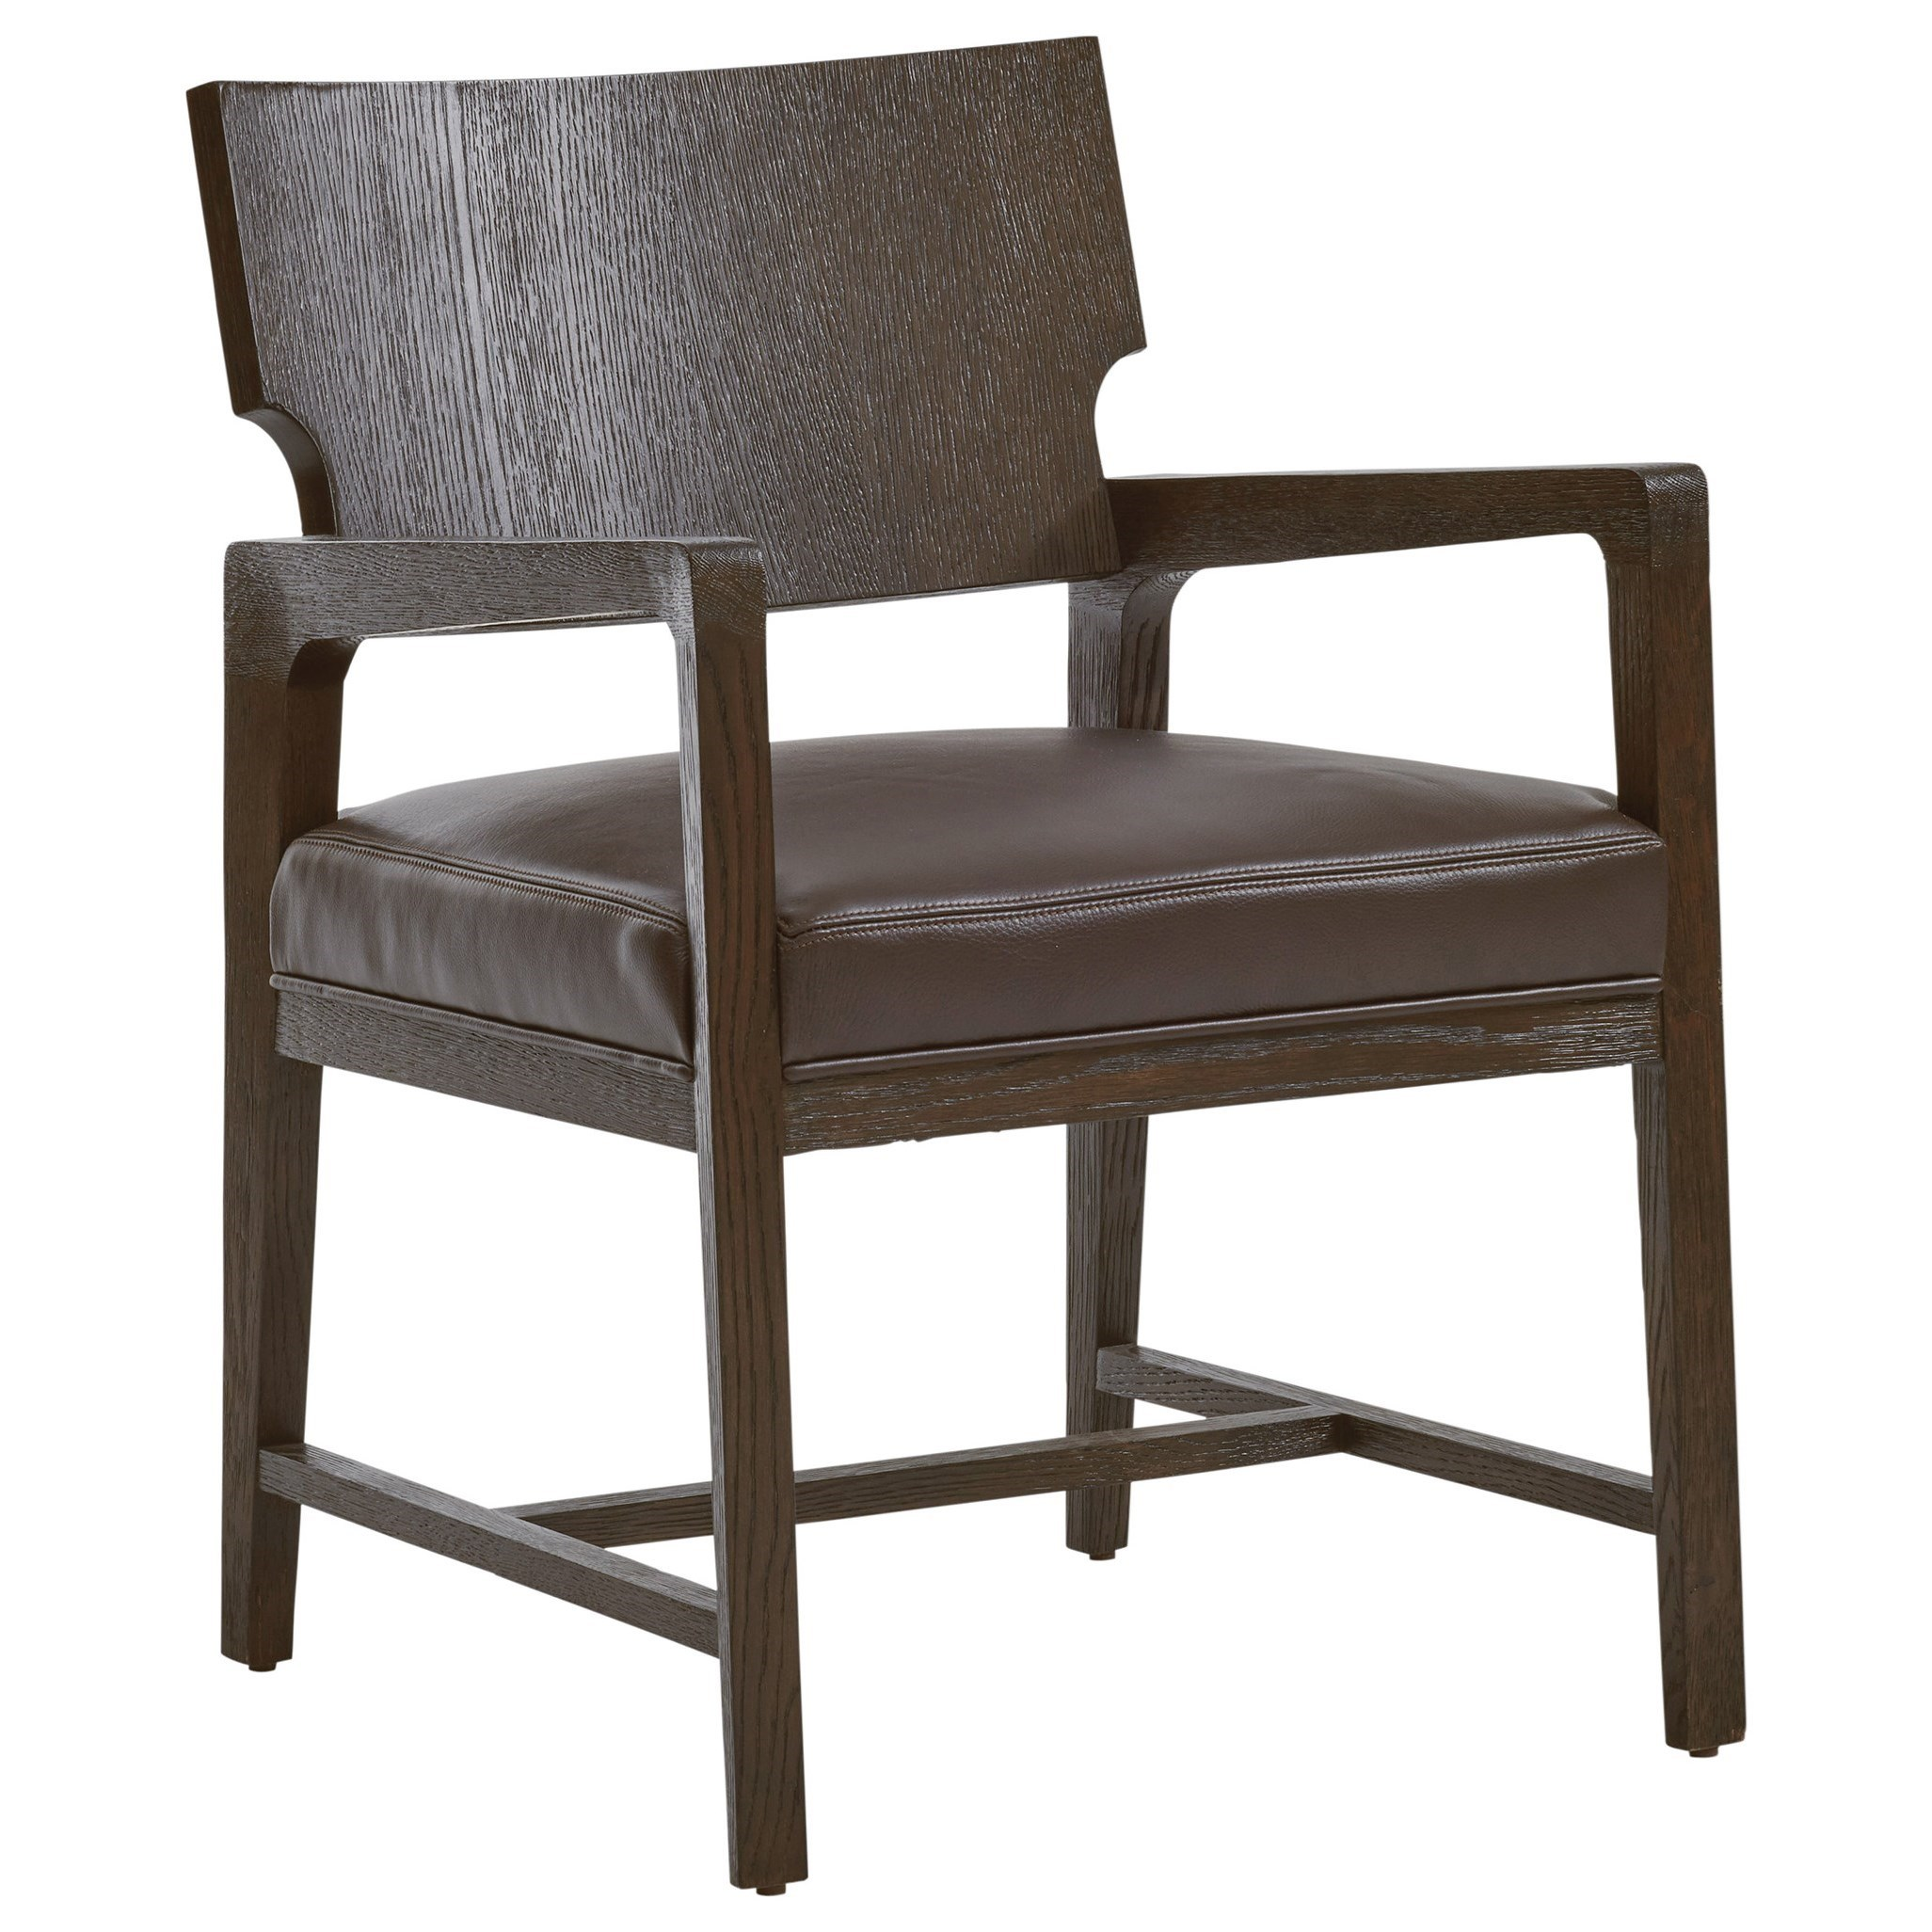 Park City Highland Dining Side Chair by Barclay Butera at Baer's Furniture